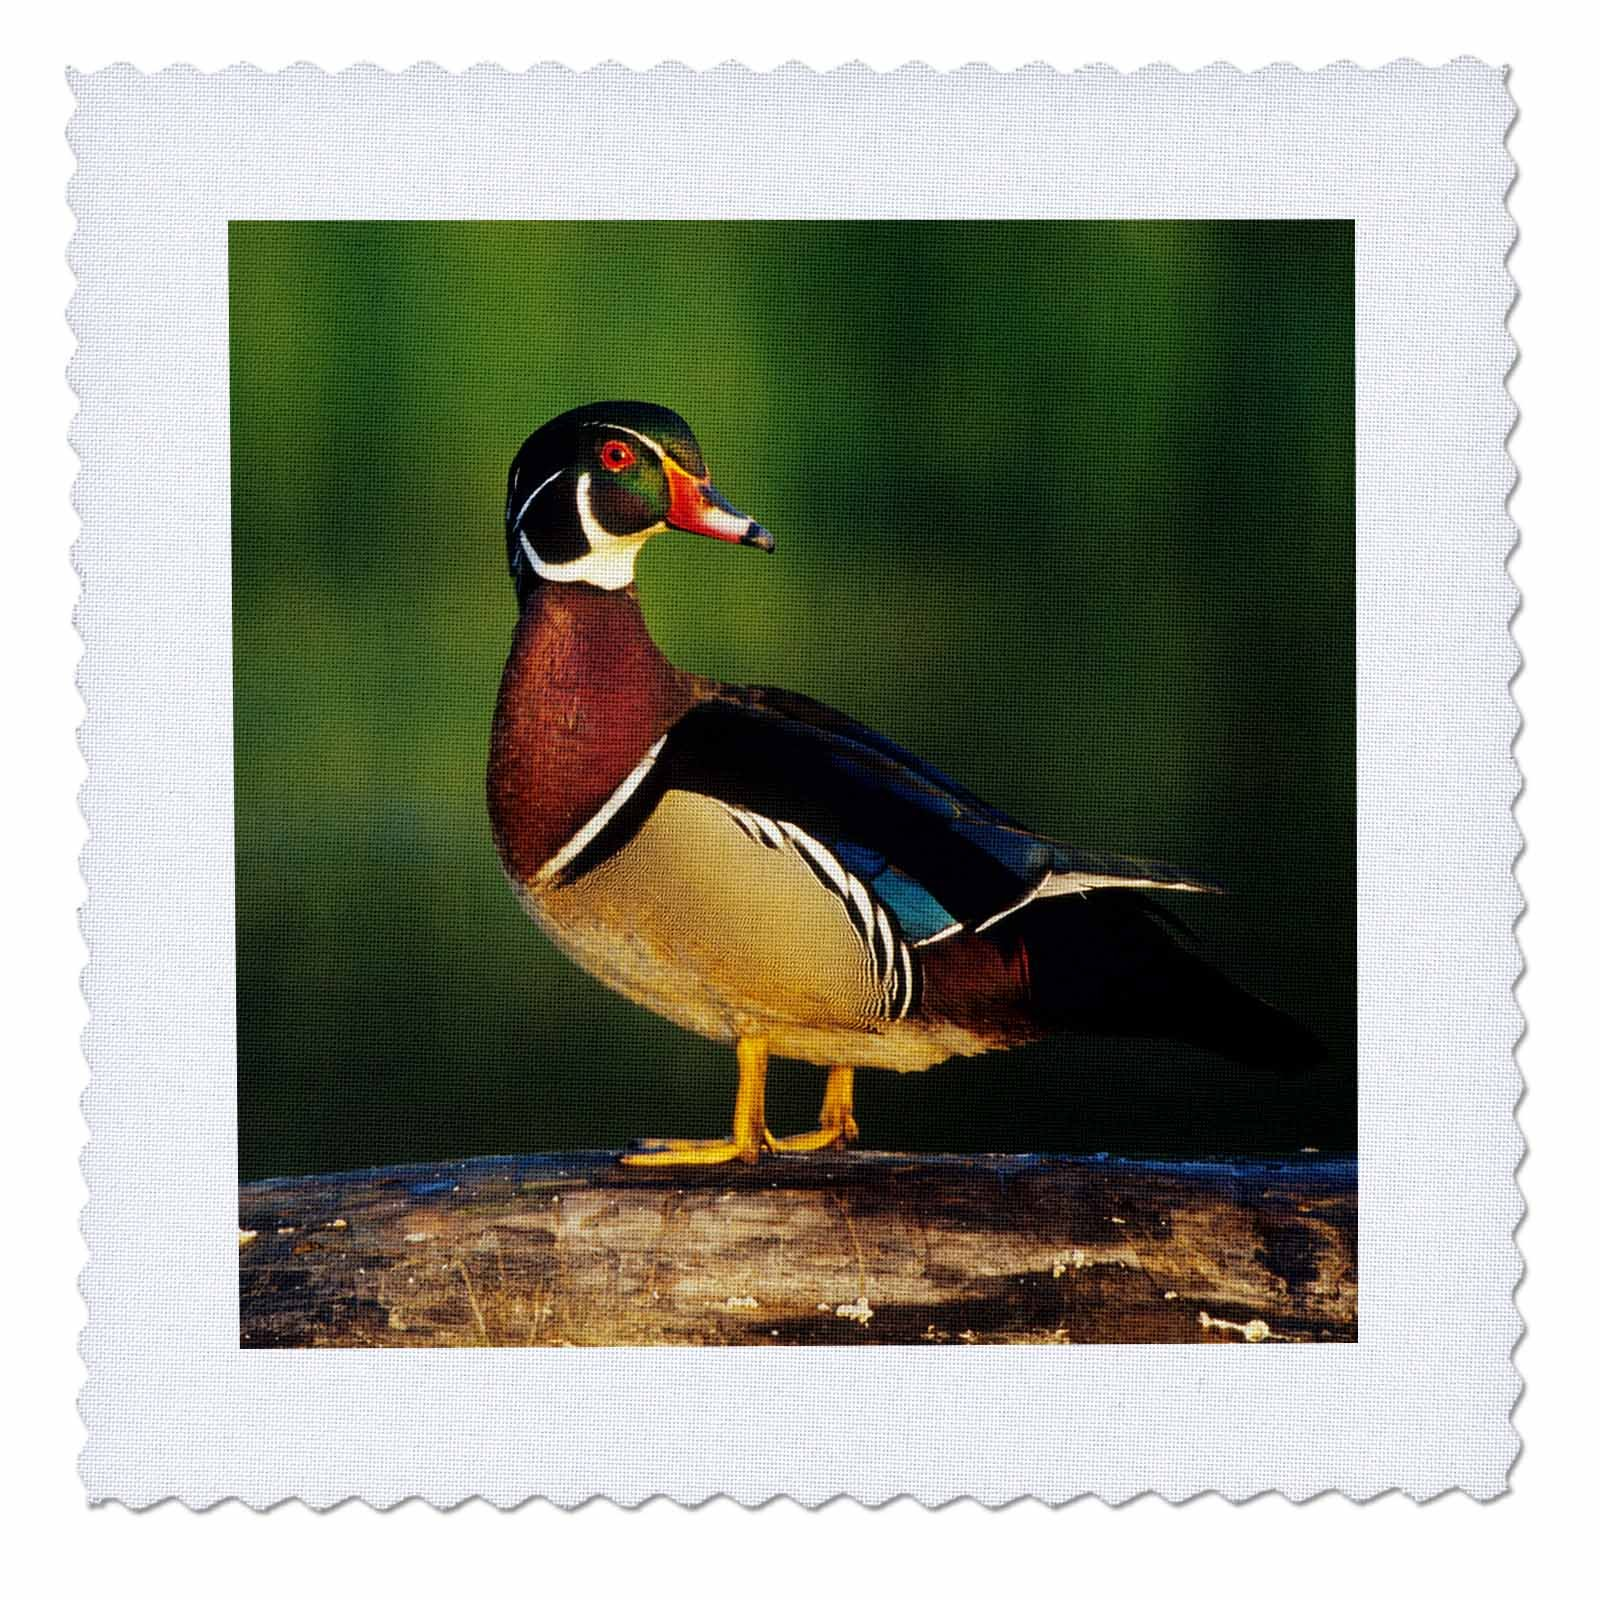 3dRose Wood Duck, Aix Sponsa, Male on Log in Wetland, Marion County, Illinois Quilt Square, 14 x 14